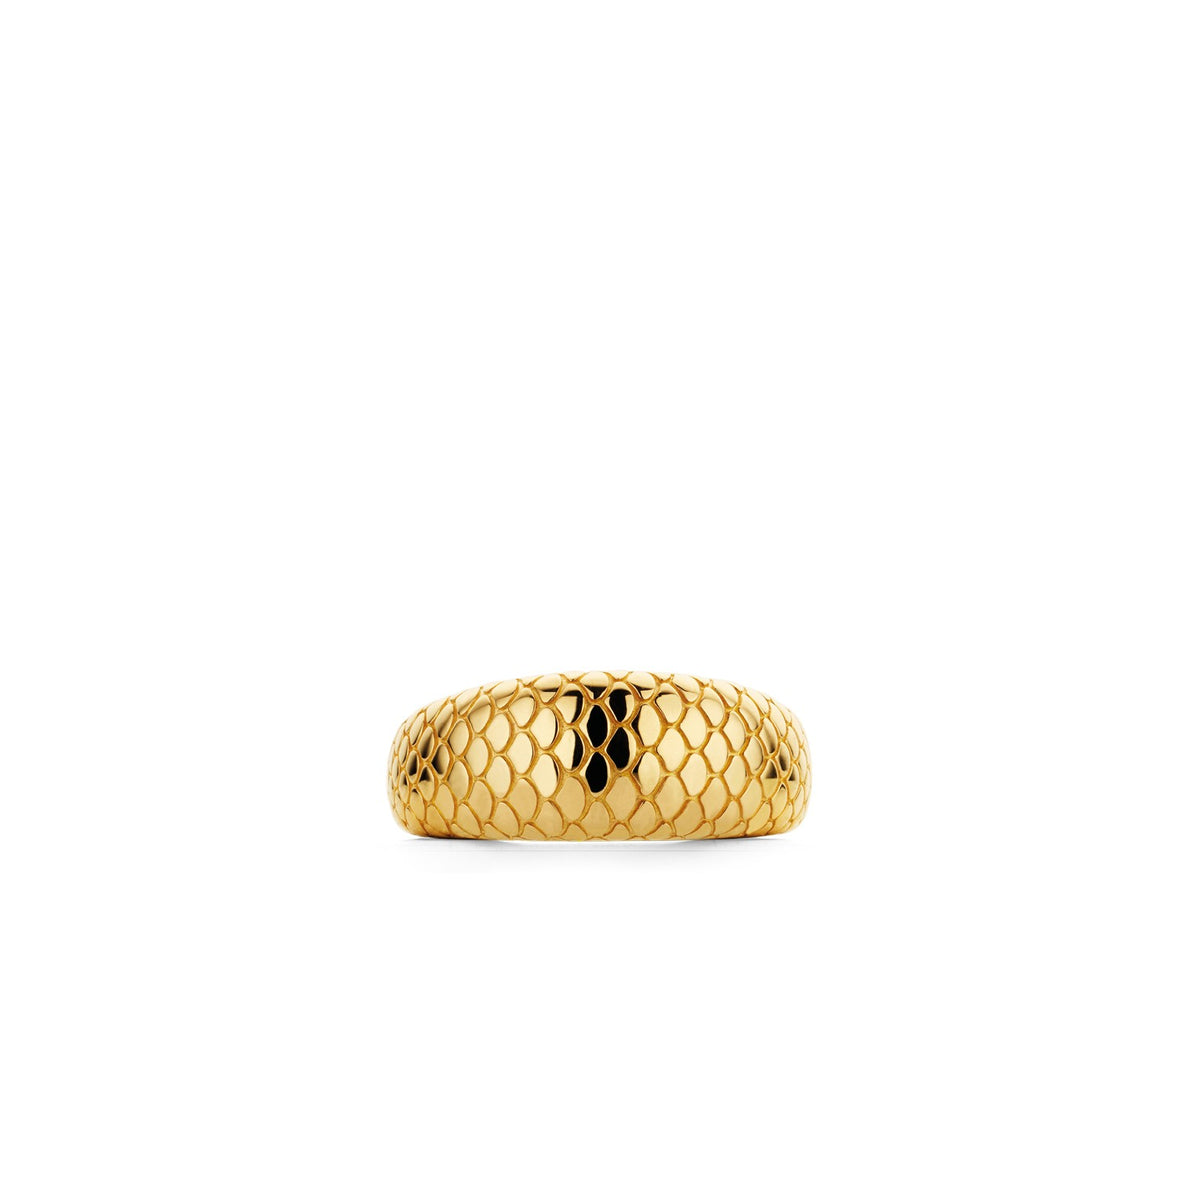 TI SENTO Sterling Silver Gold Tone Tapered Snake Print Ring